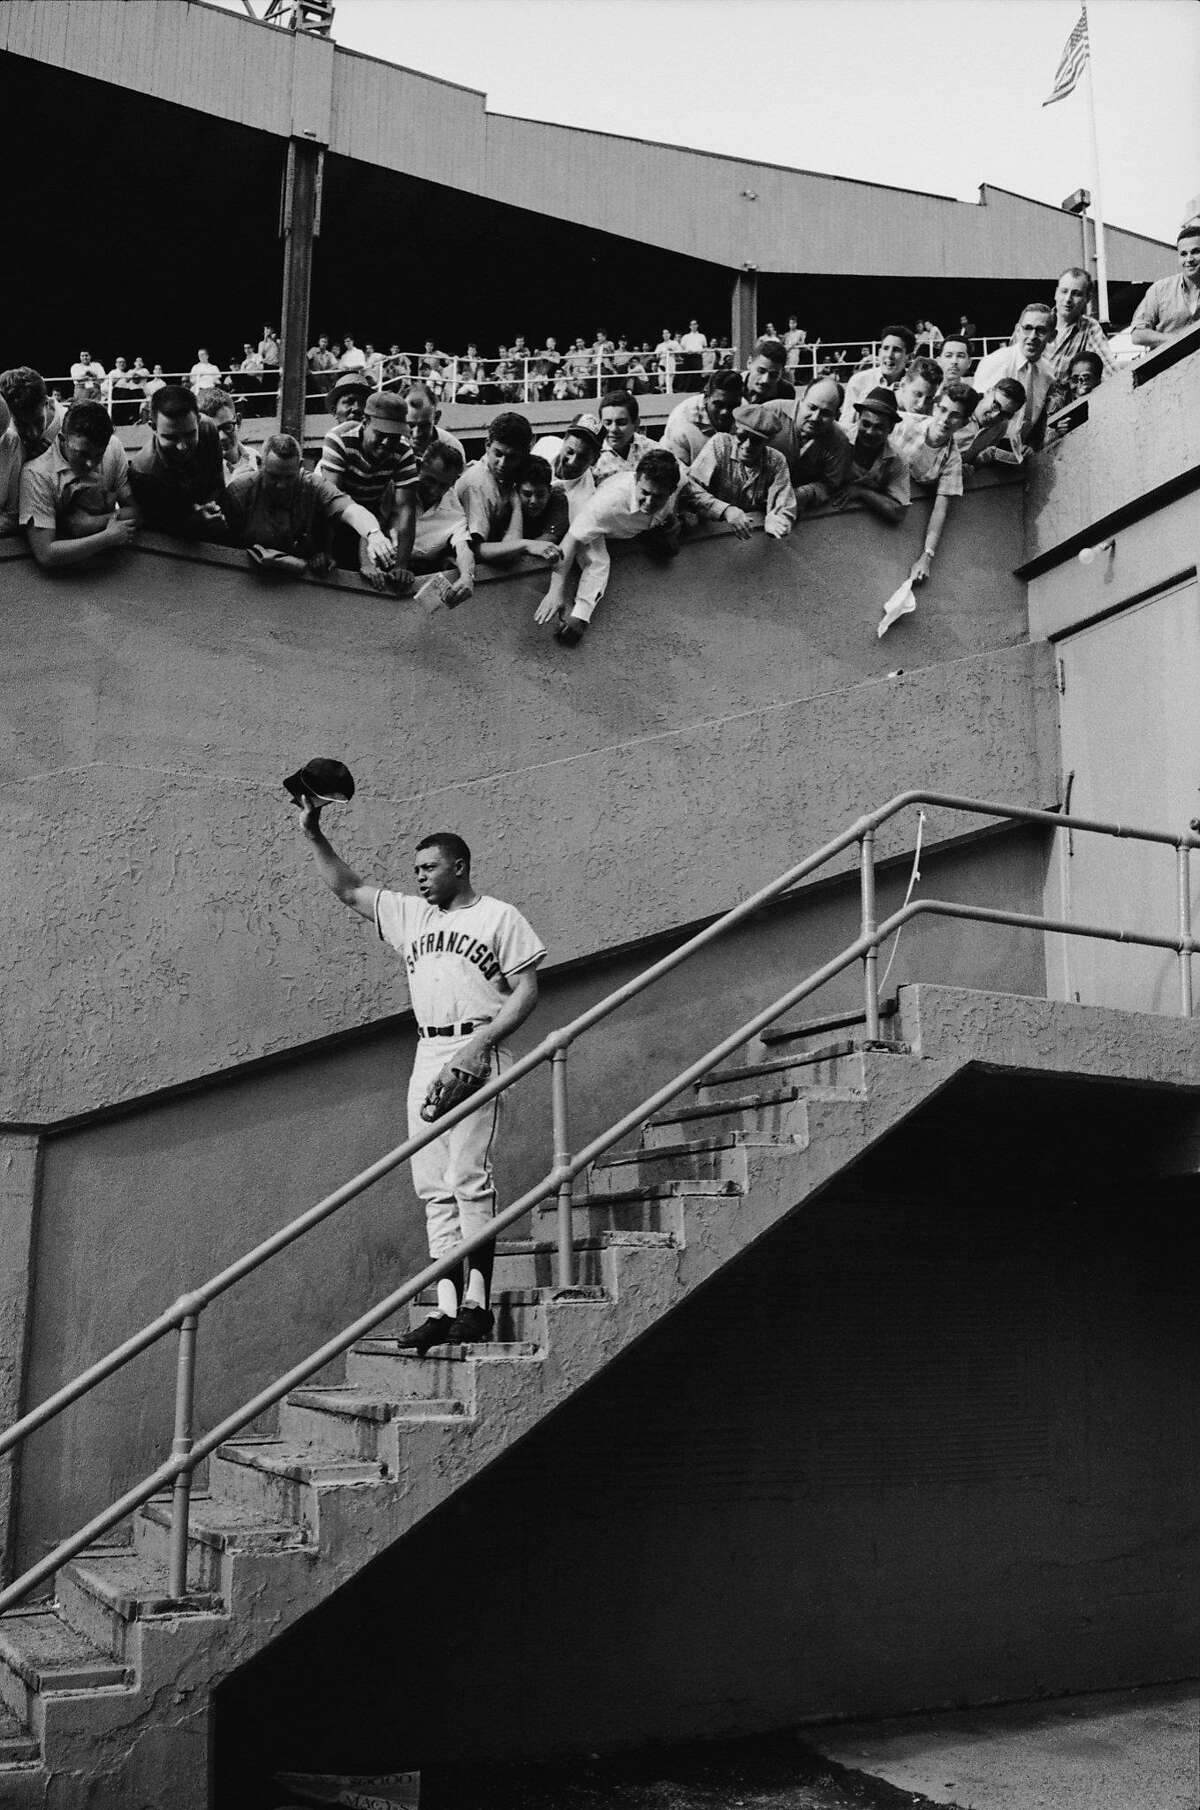 Fans welcoming Giants star Willie Mays at Polo Grounds.